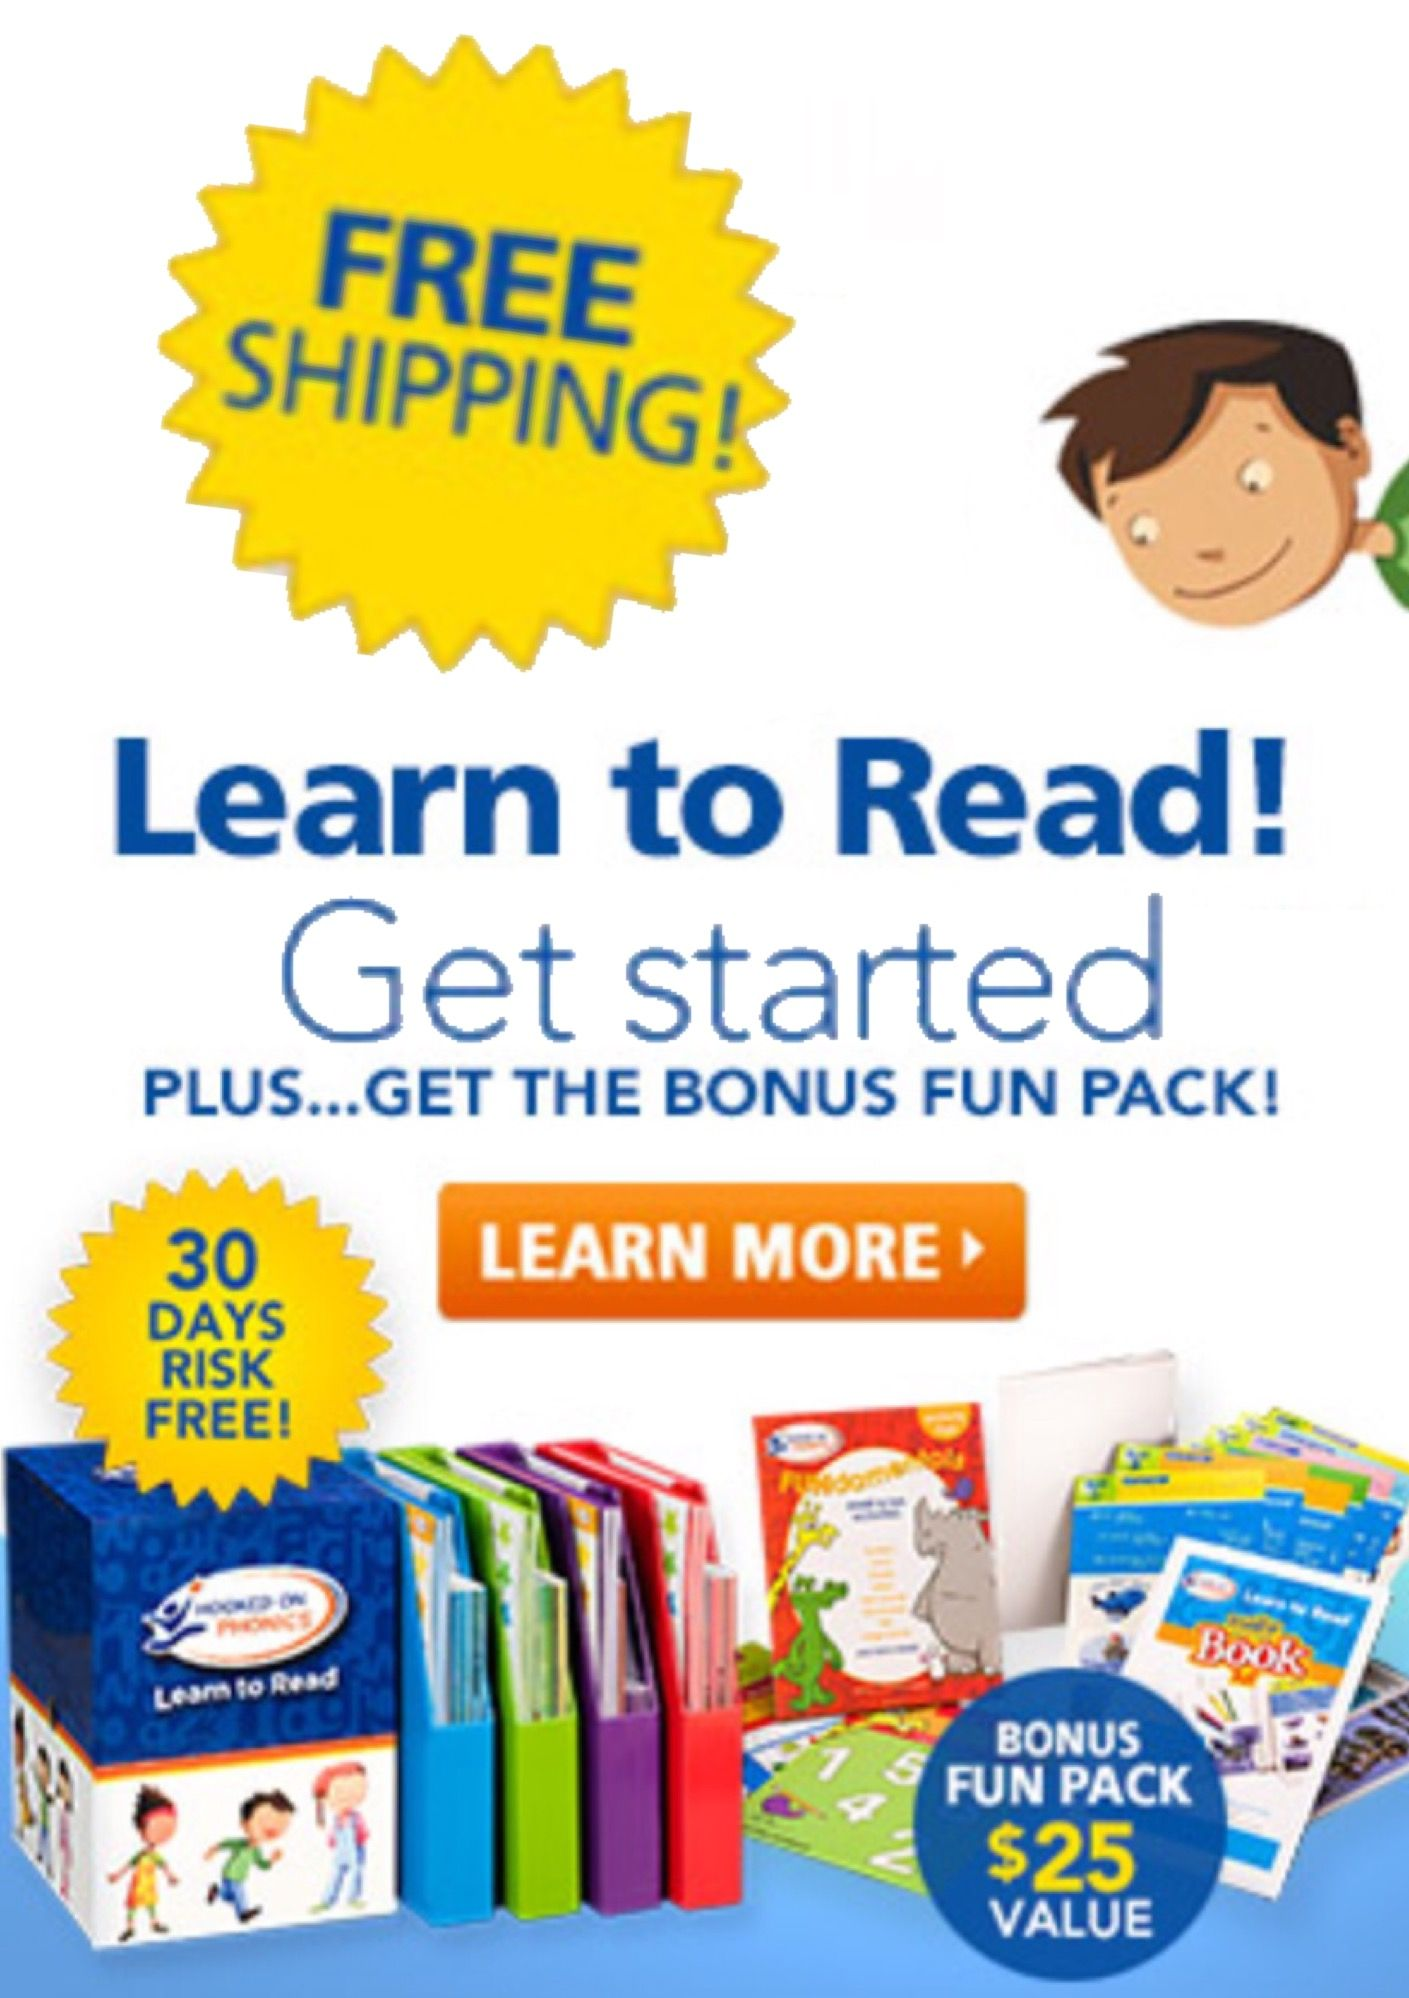 Hooked On Phonics Complete Set For Ages 3 8yrs Old